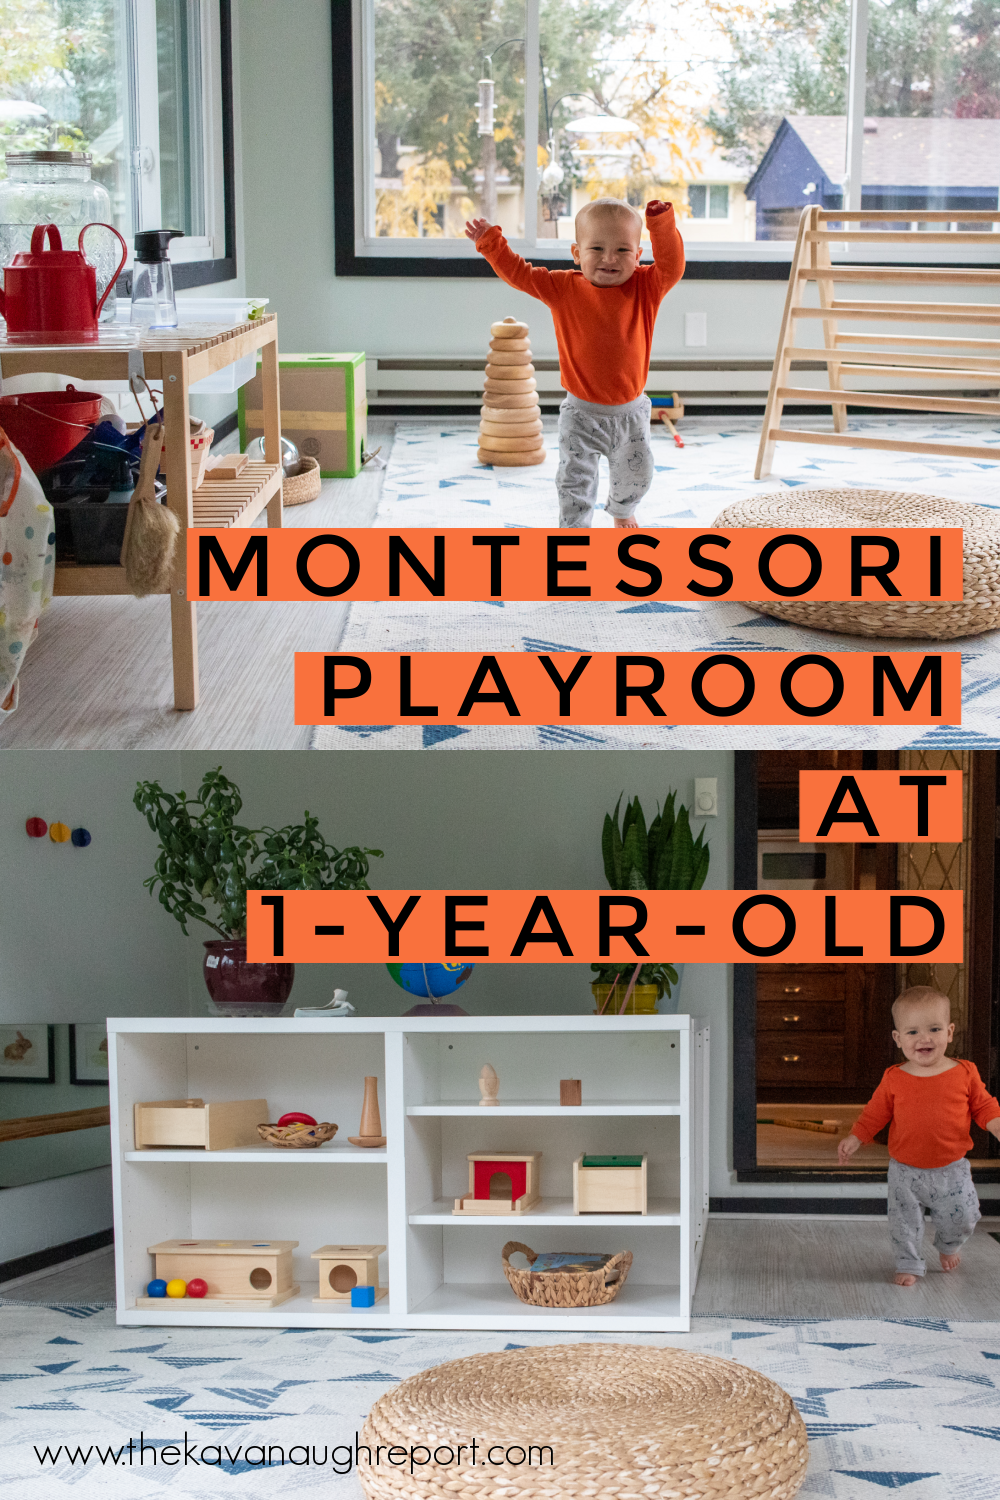 A Montessori toddler space for 1-year-olds, here is how we transitioned away from our Montessori baby movement area and into a larger play space.